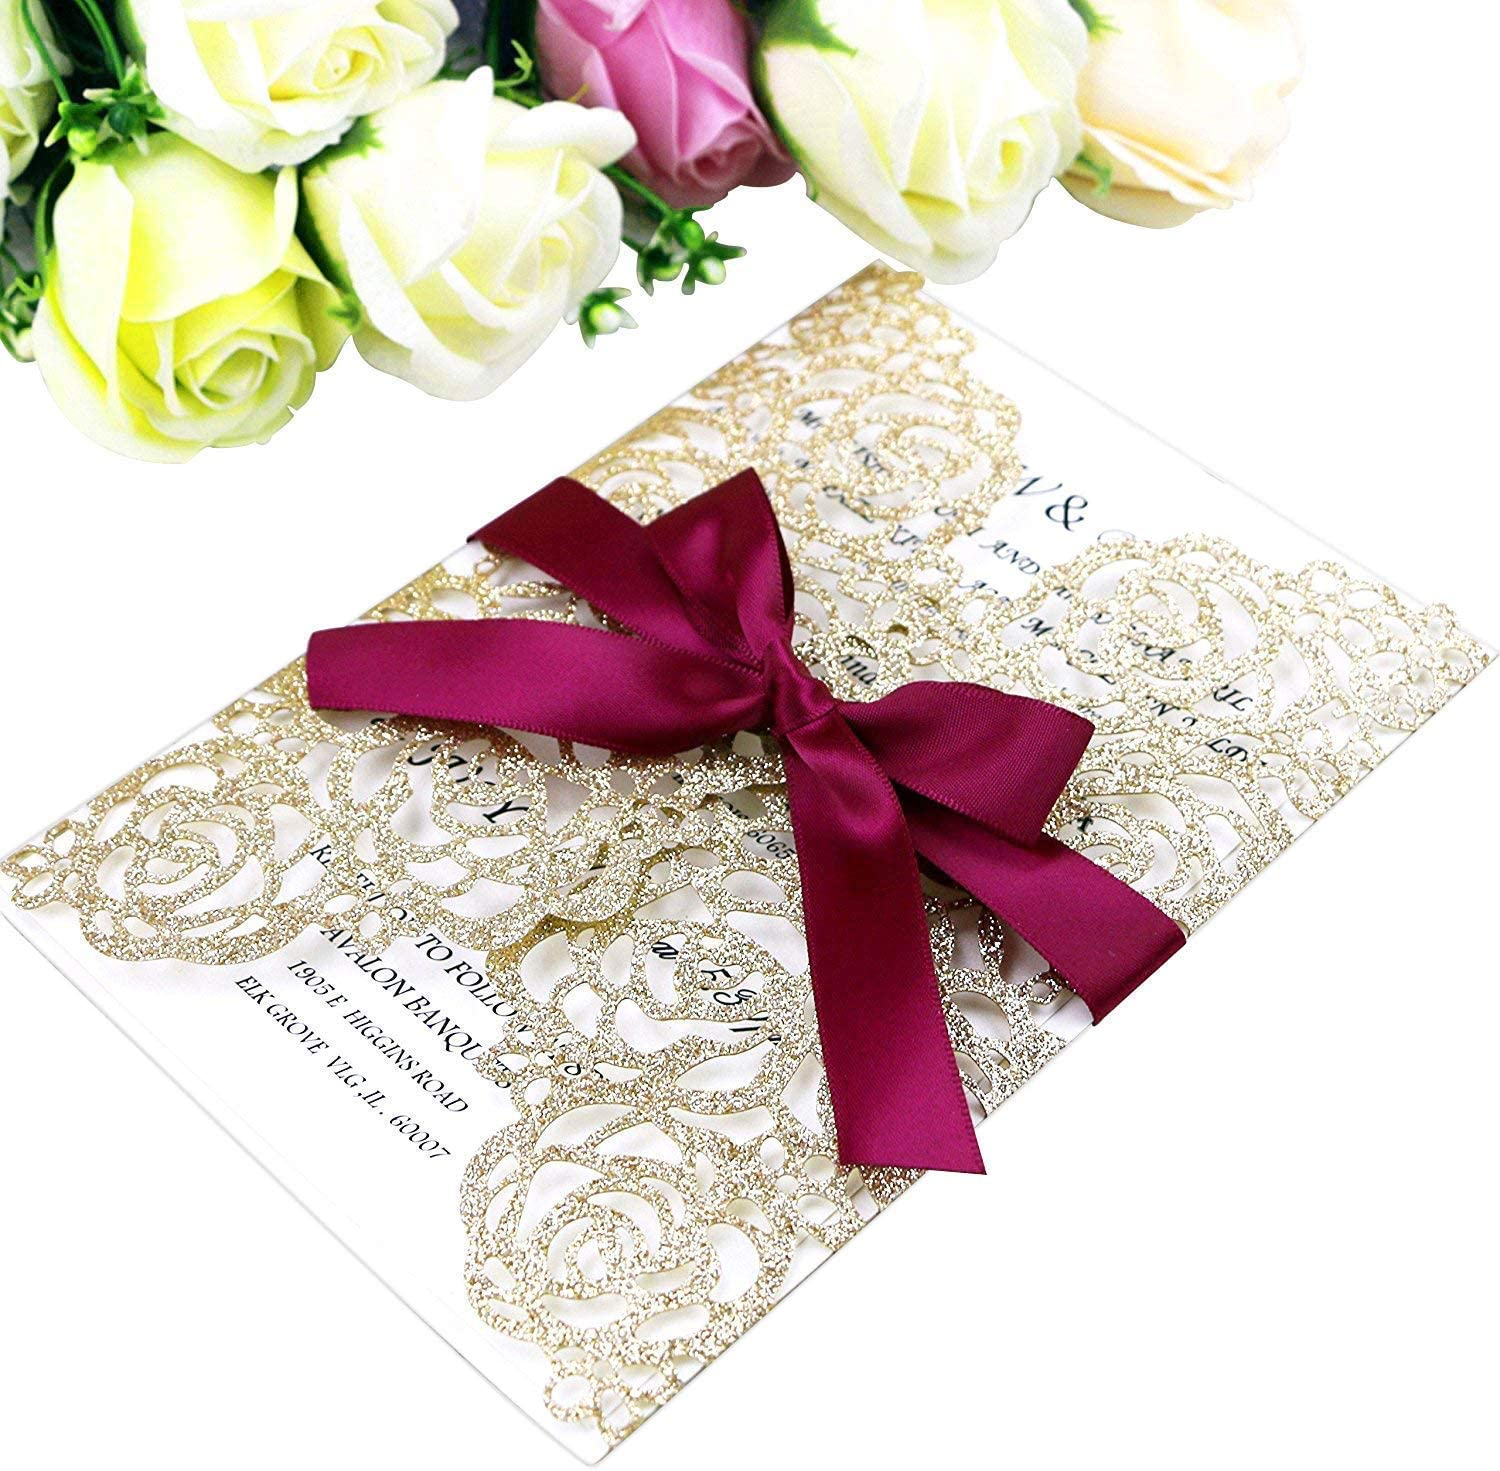 PONATIA 25PCS Hollow Rose Laser Cut Wedding Invitations Cards with Envelopes, Printable Paper with Burgundy Ribbons For Wedding Bridal Shower Engagement Sweet 16 Birthday Invite (Gold Glitter)